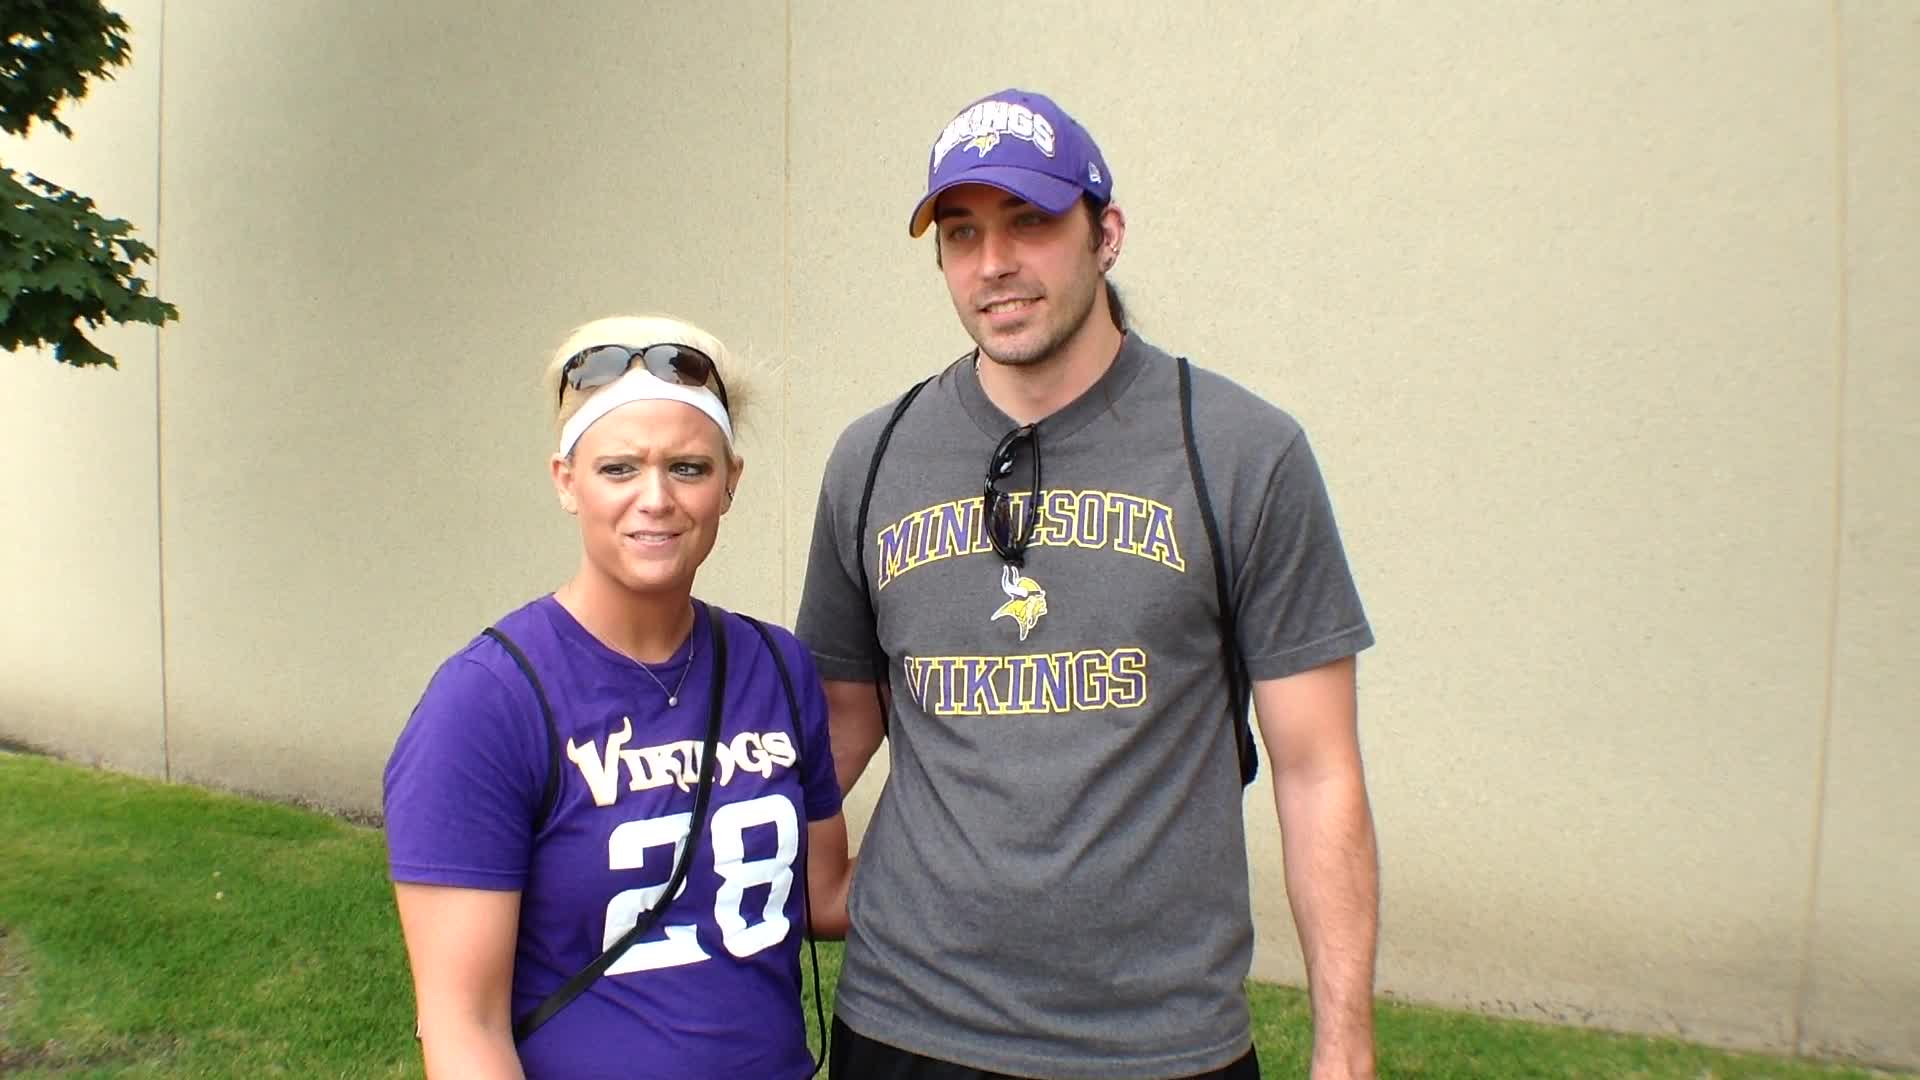 Jessica and Mark Heirigs, North Mankato, MN - Fan experiences at Minnesota Vikings Training Camp at Minnesota State University, Mankato